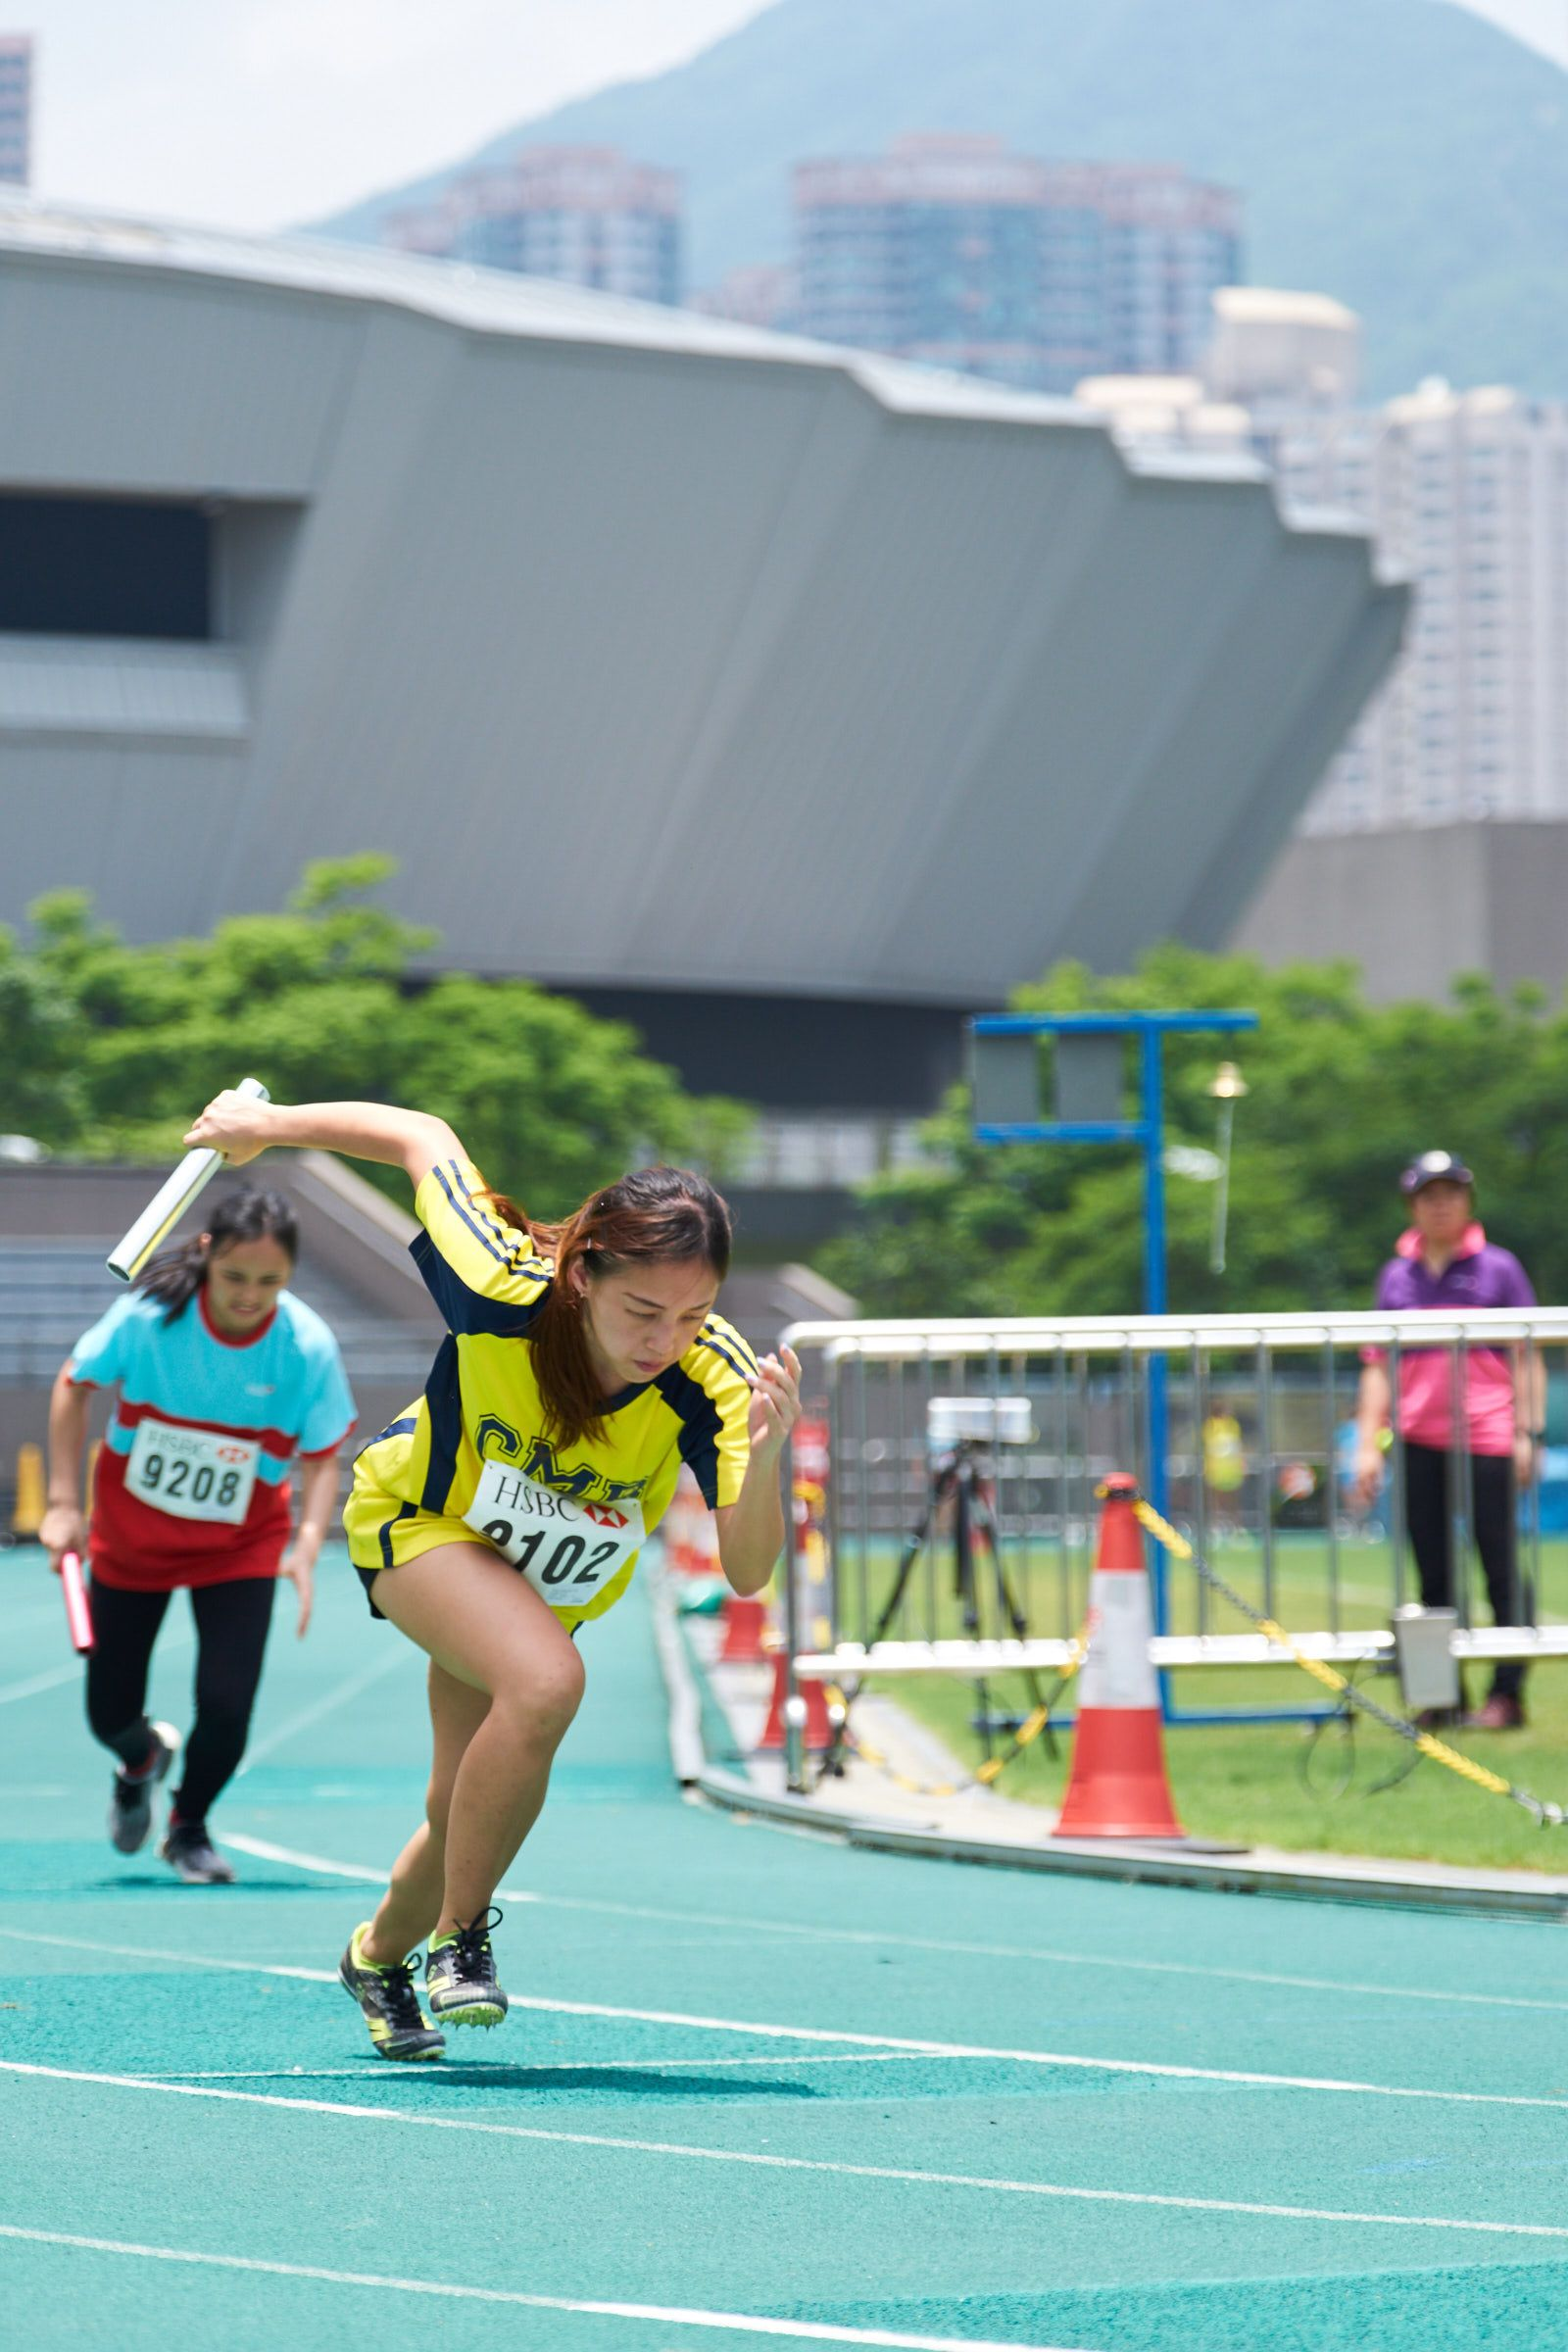 HSBC Sports Day 2016 - Hong Kong